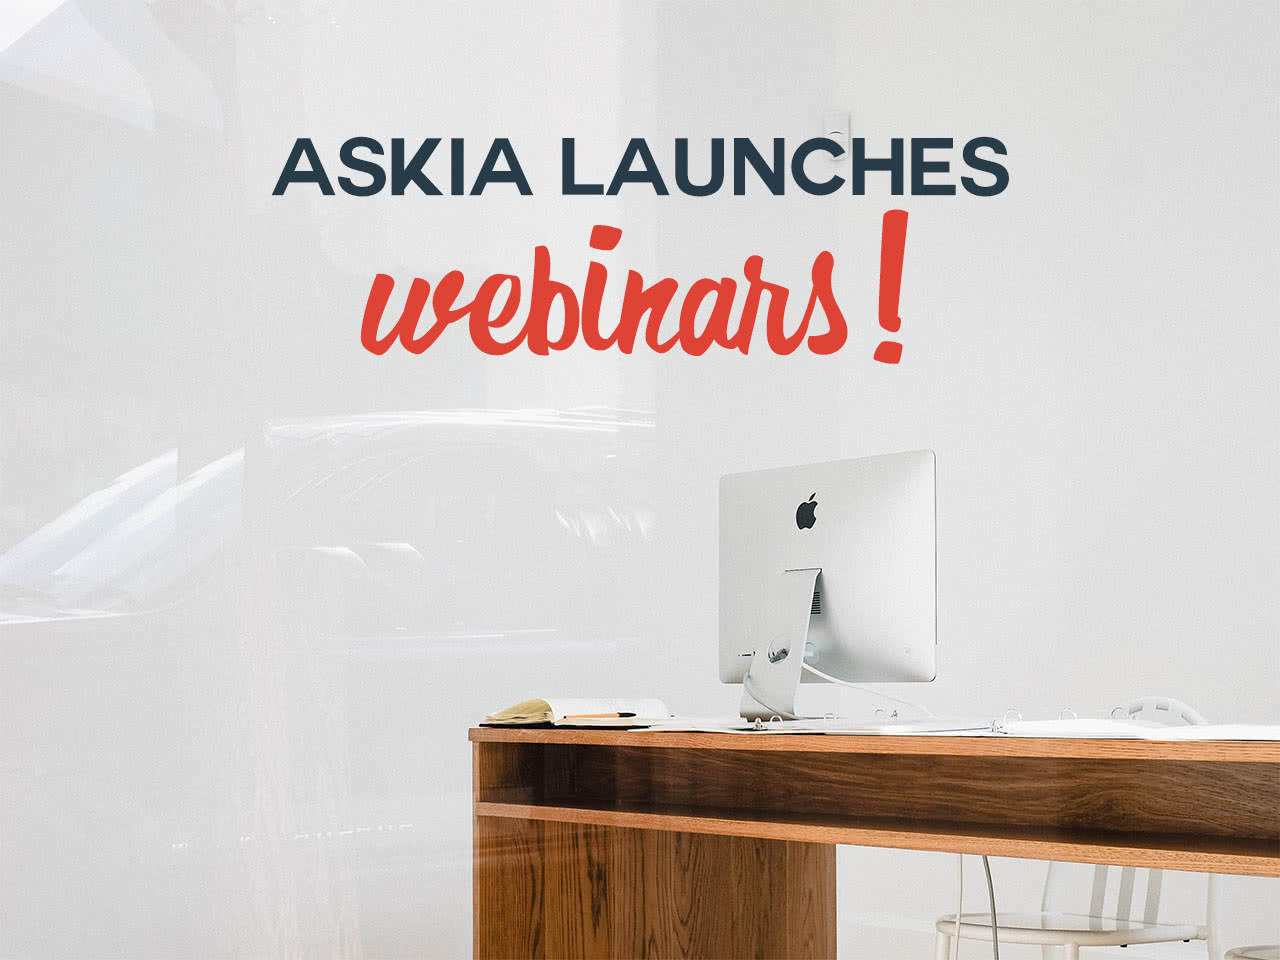 Askia launches webinars!